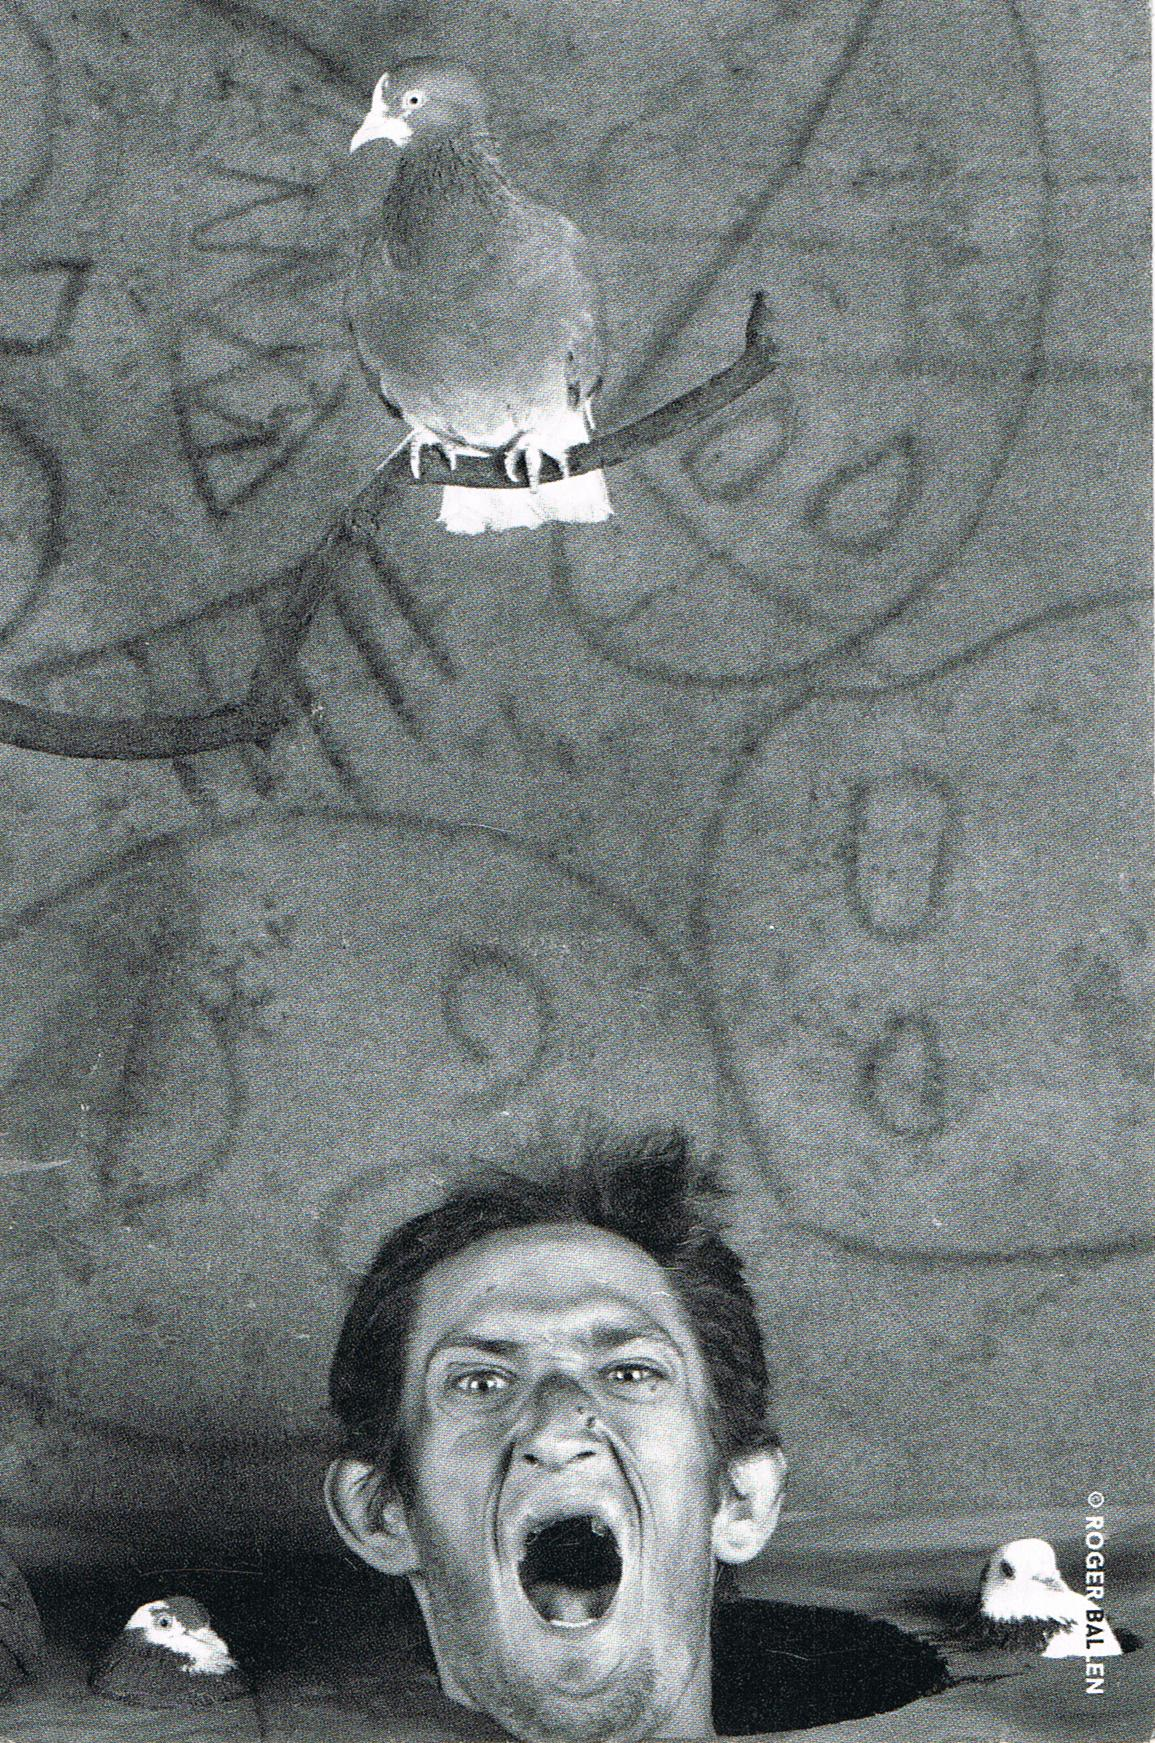 Scream 2012 von Roger Ballen